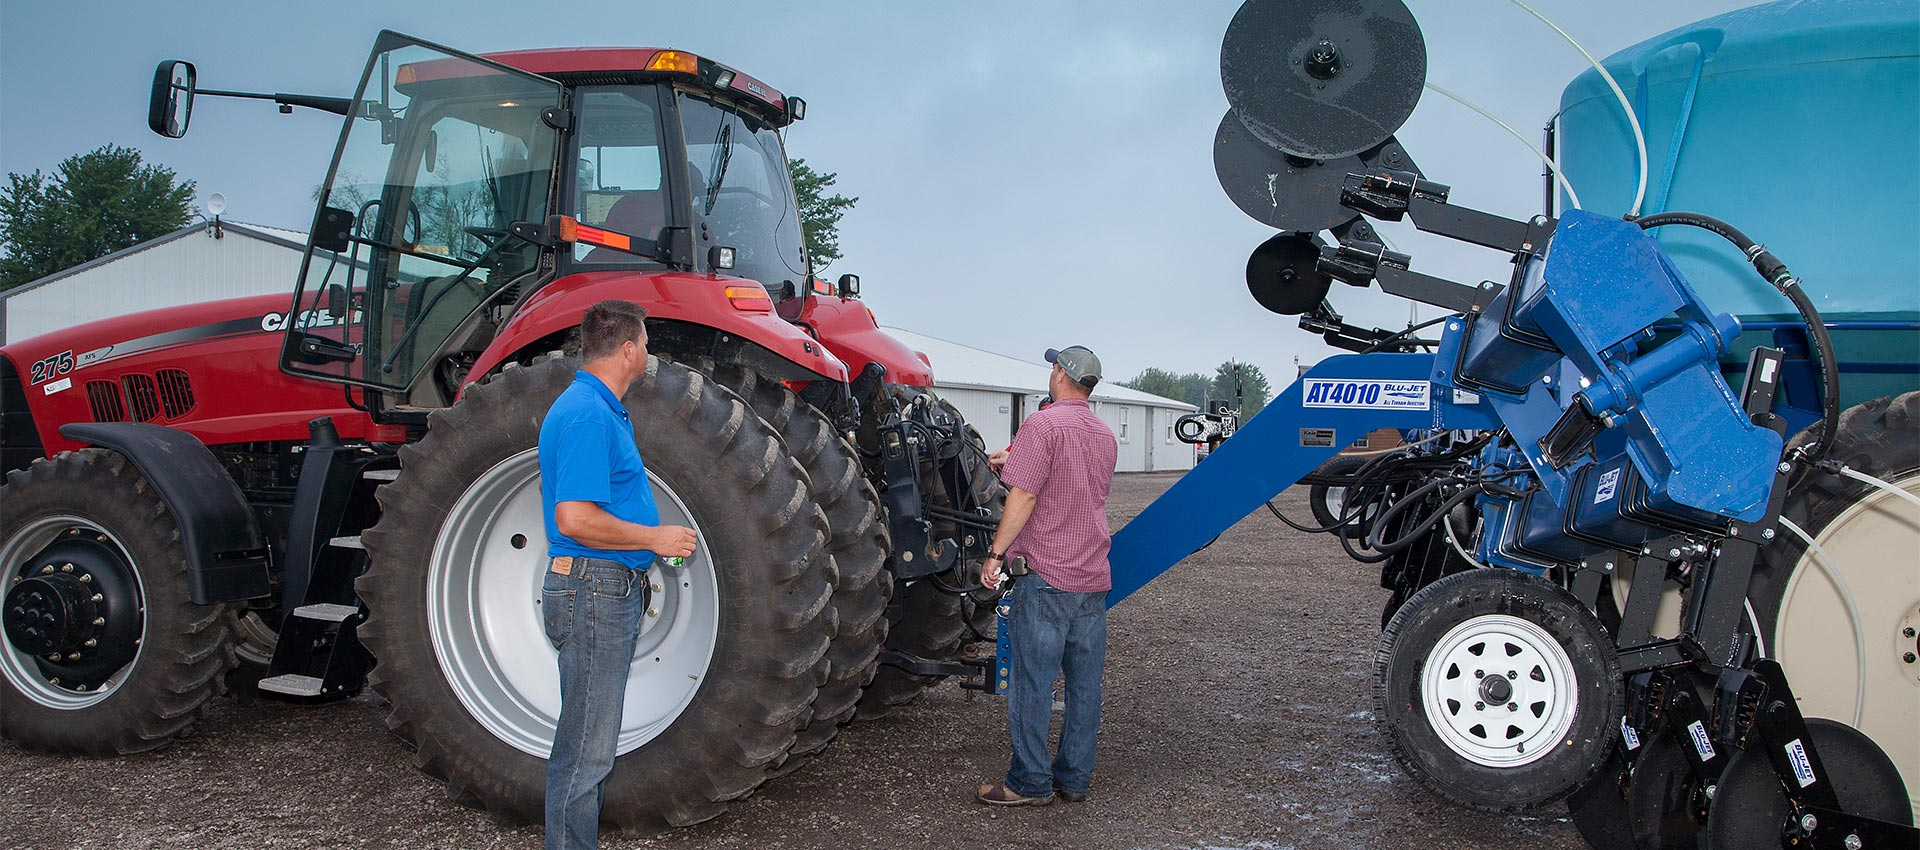 Case IH tractor and Blu Jet equipment